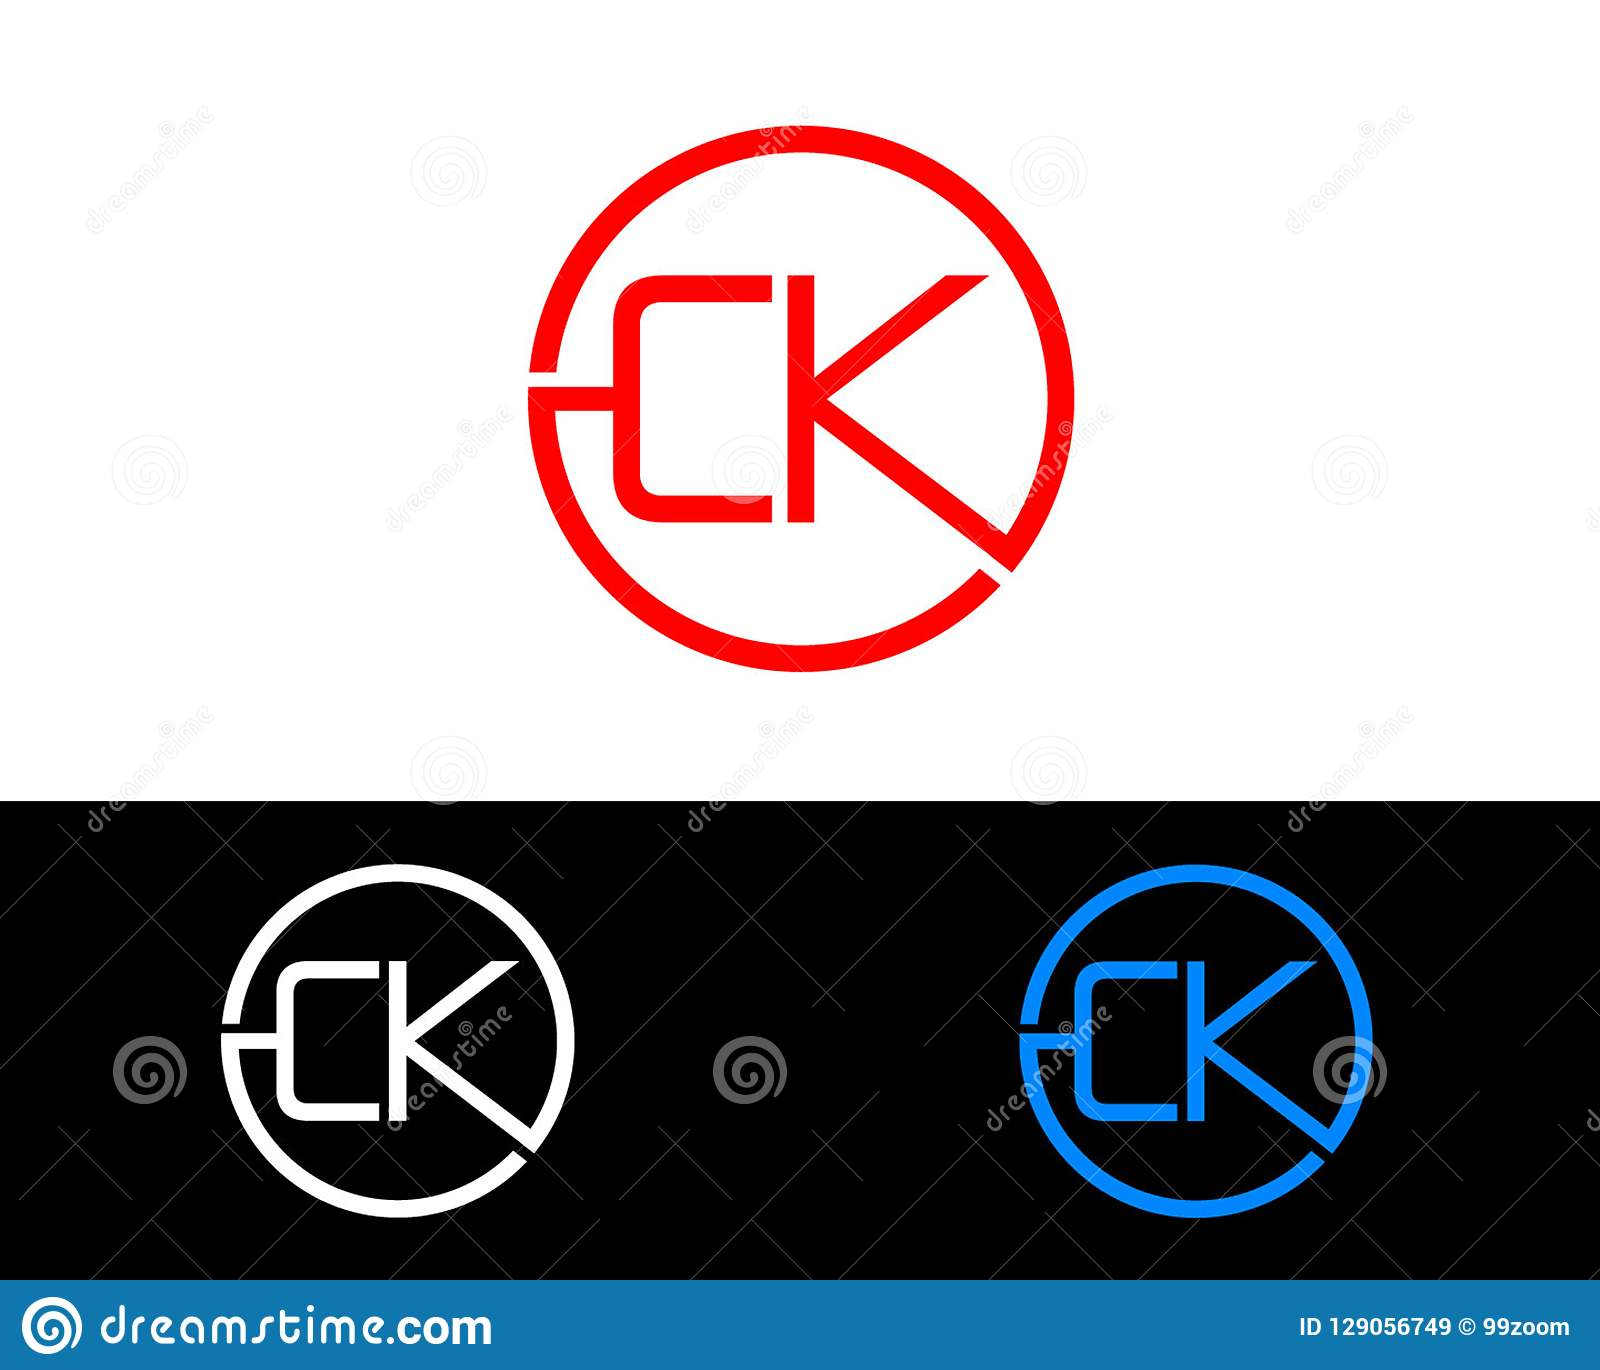 CK Circle Shape Letter Logo Design Stock Vector